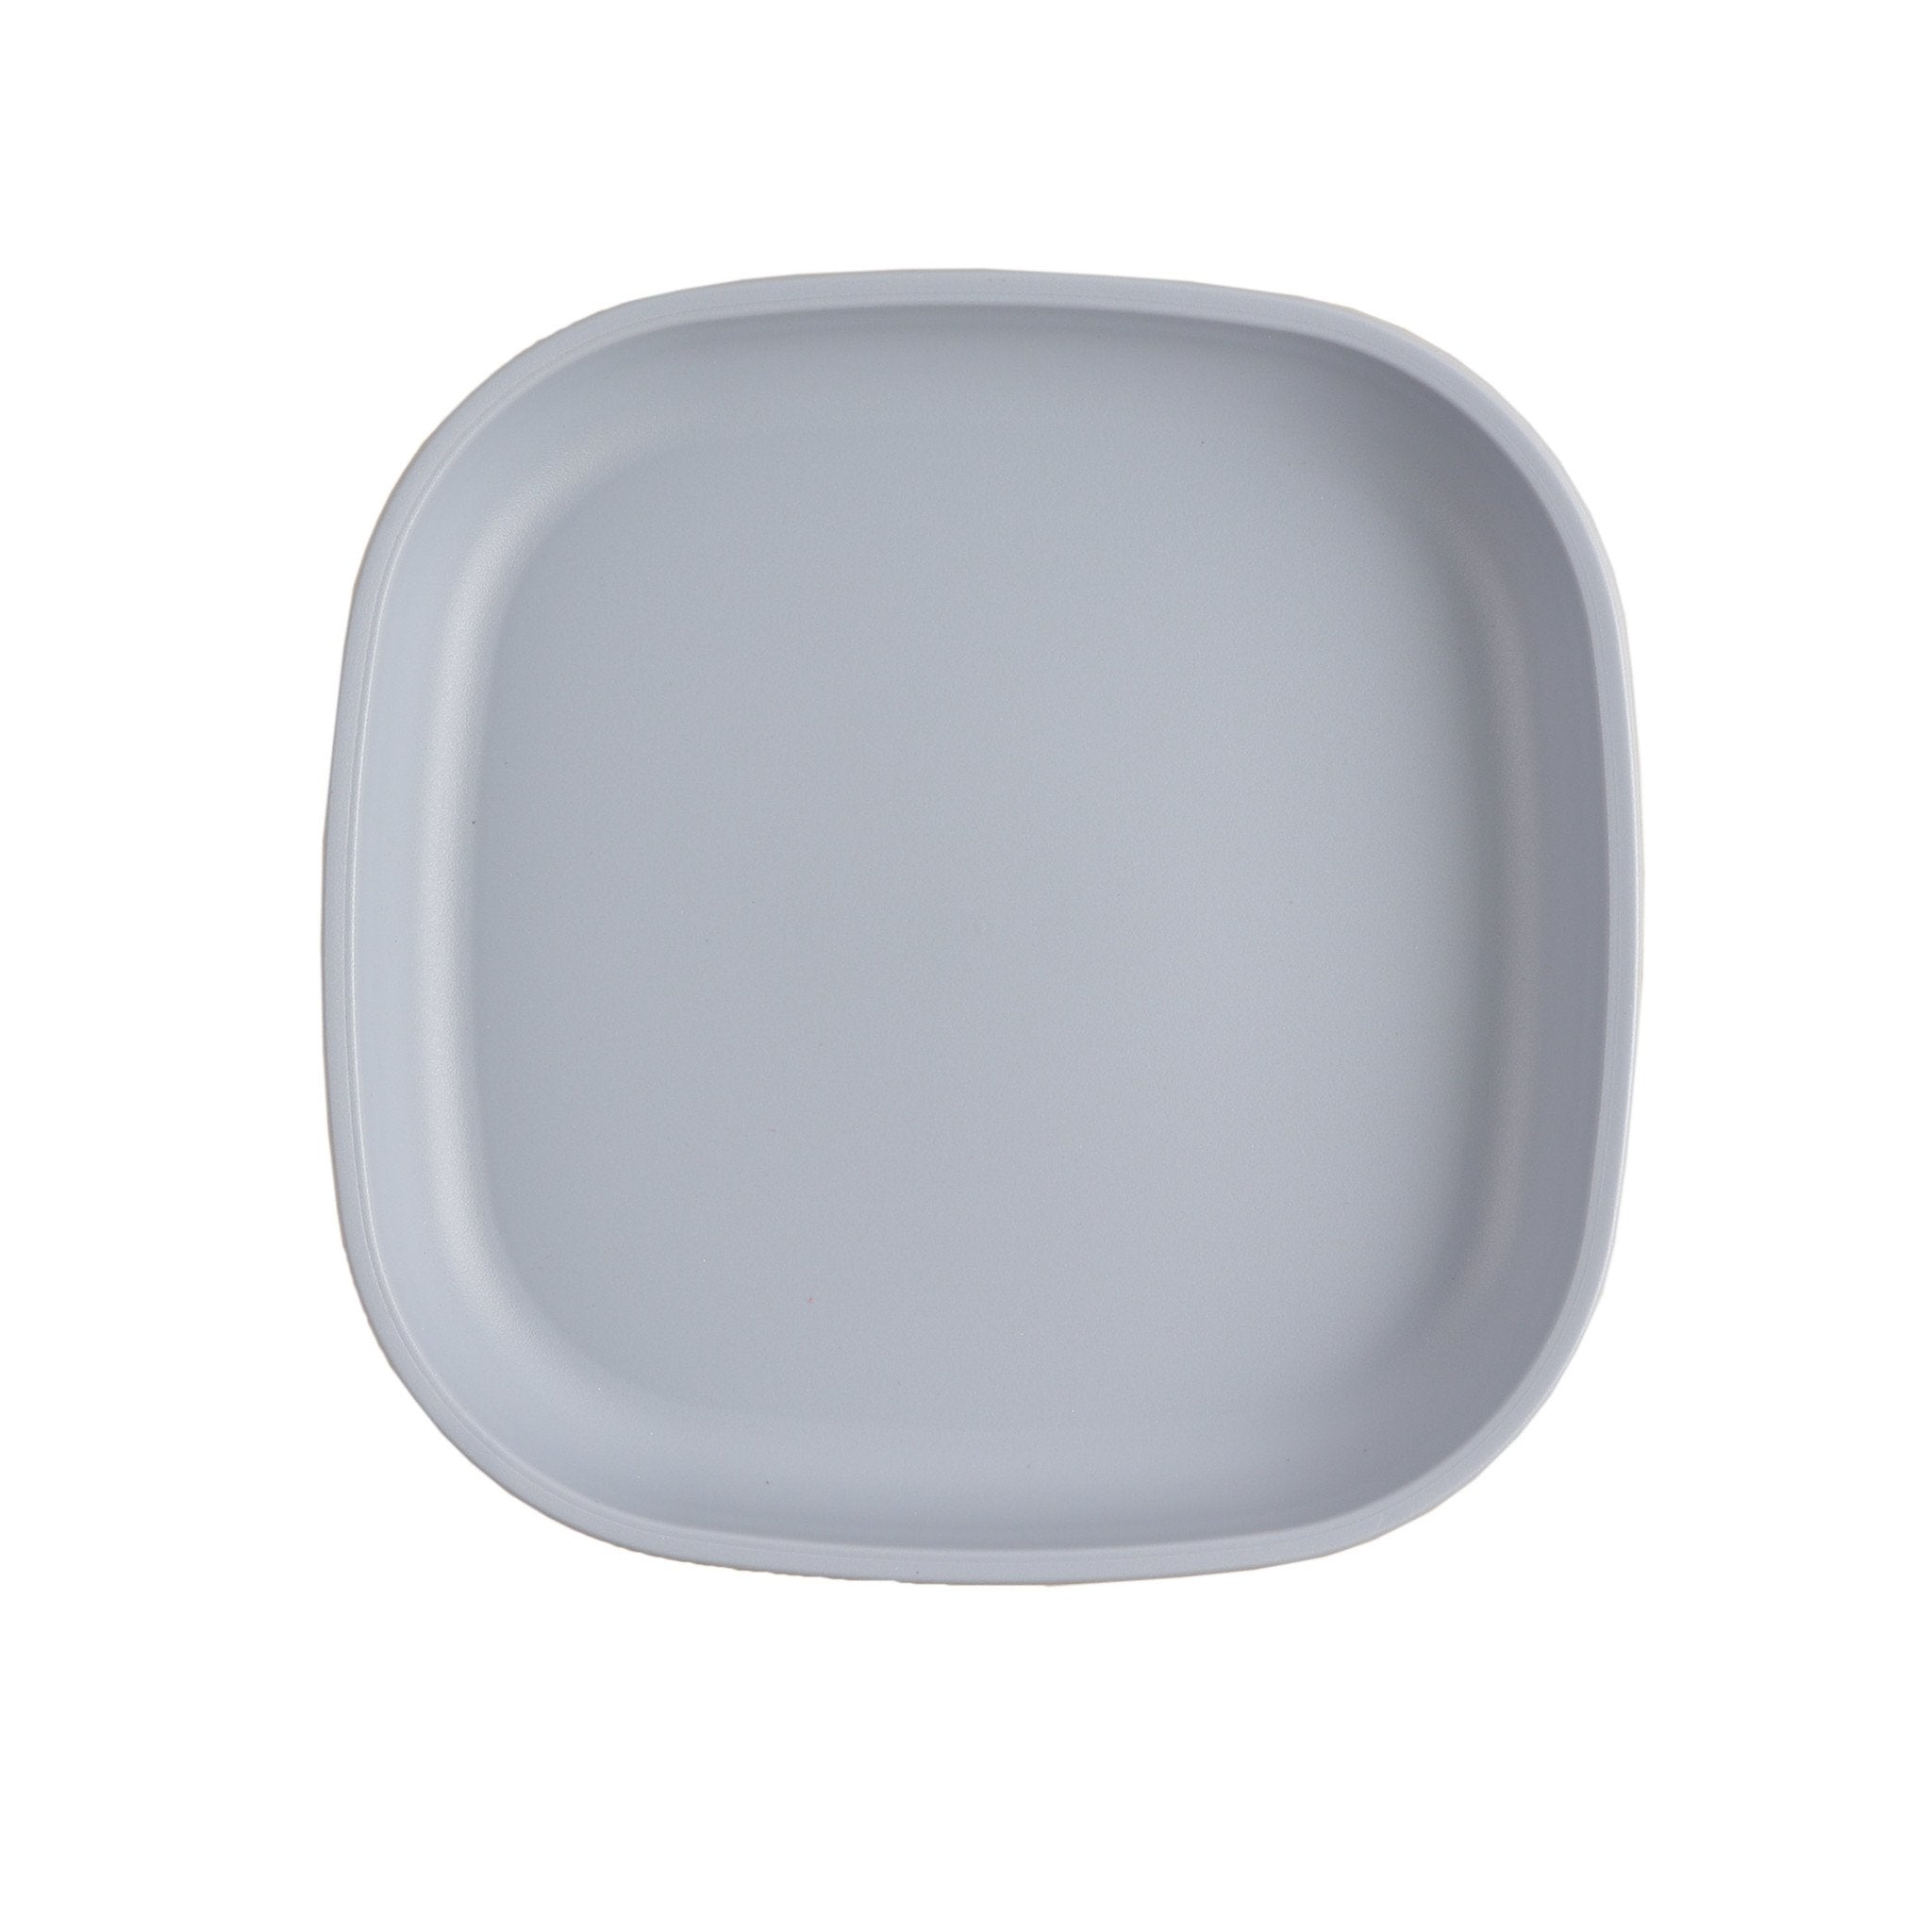 Replay Large Plate Replay Dinnerware Grey at Little Earth Nest Eco Shop